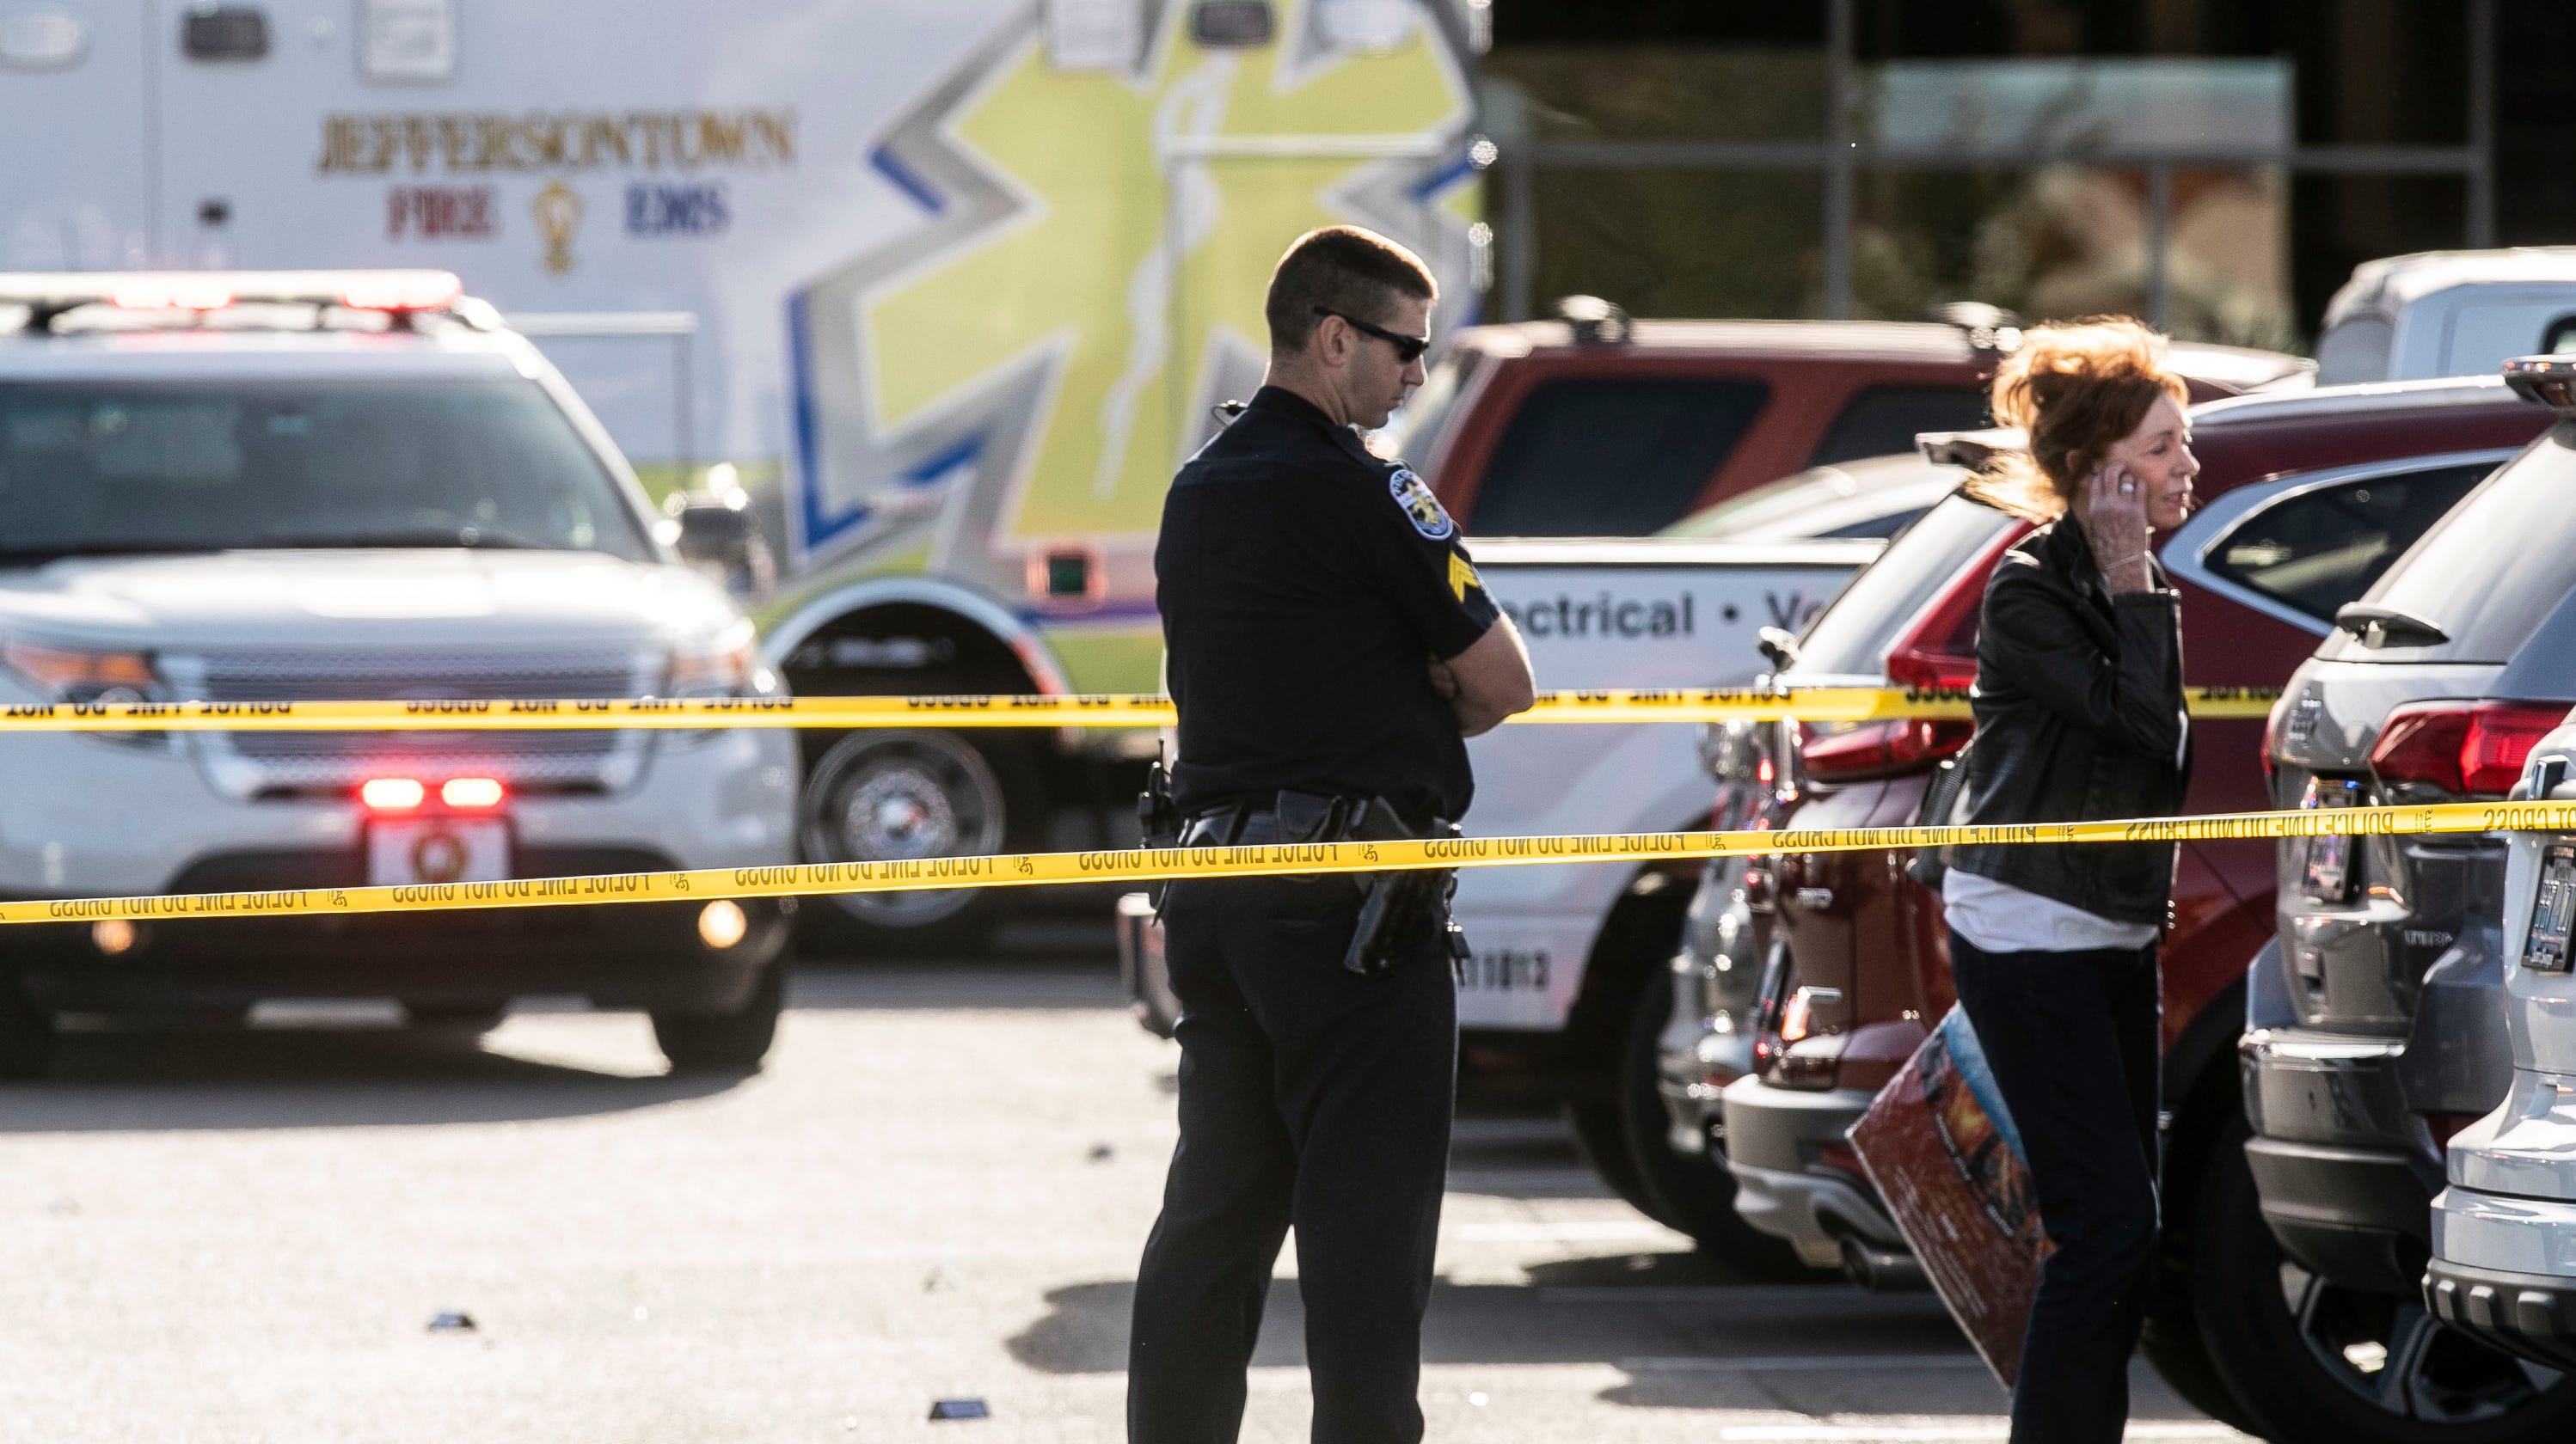 Louisville Kroger shooting: Here's what we know